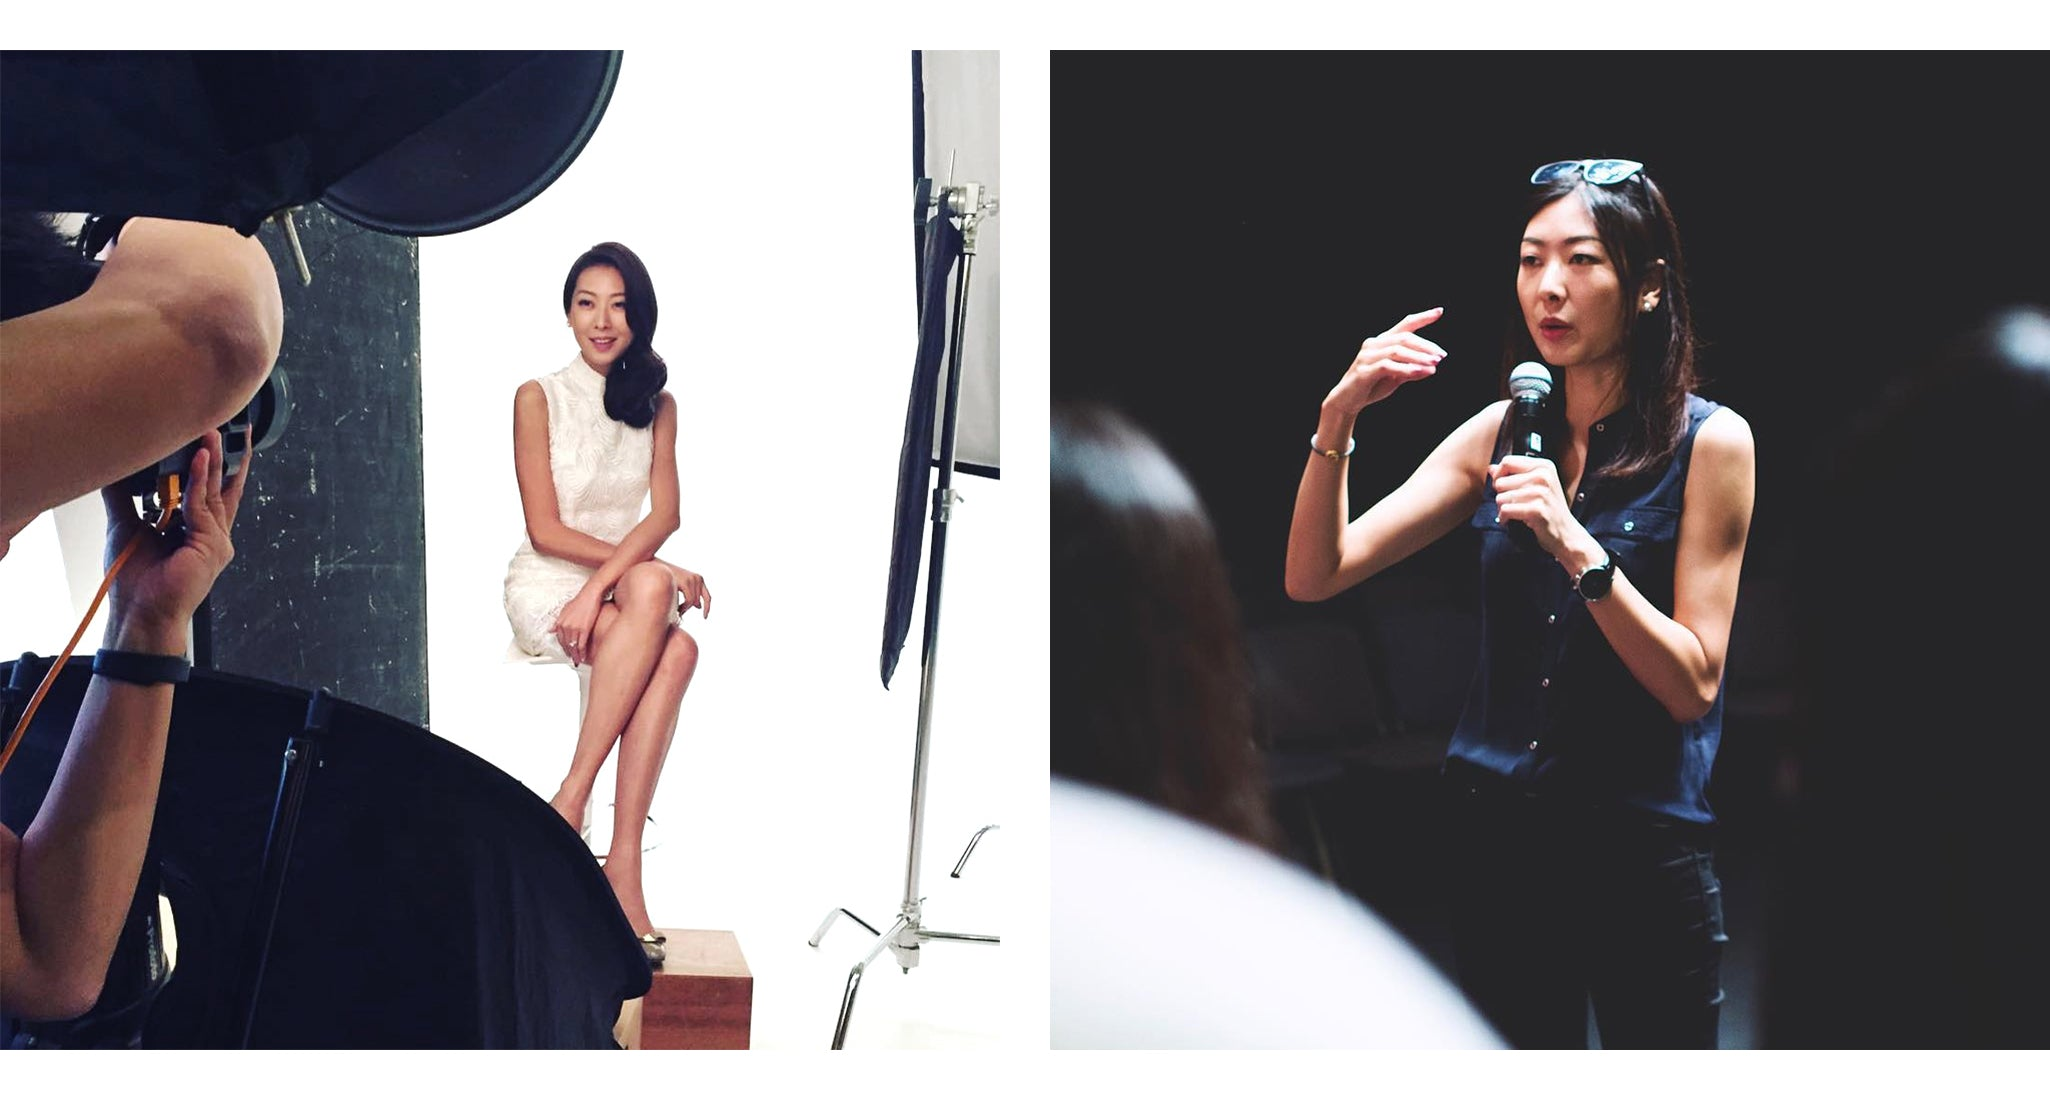 YI-MING X ESEMBLE Meet the Girl Grace Choi, Founder and Designer of Yi-ming, Model & Event Producer